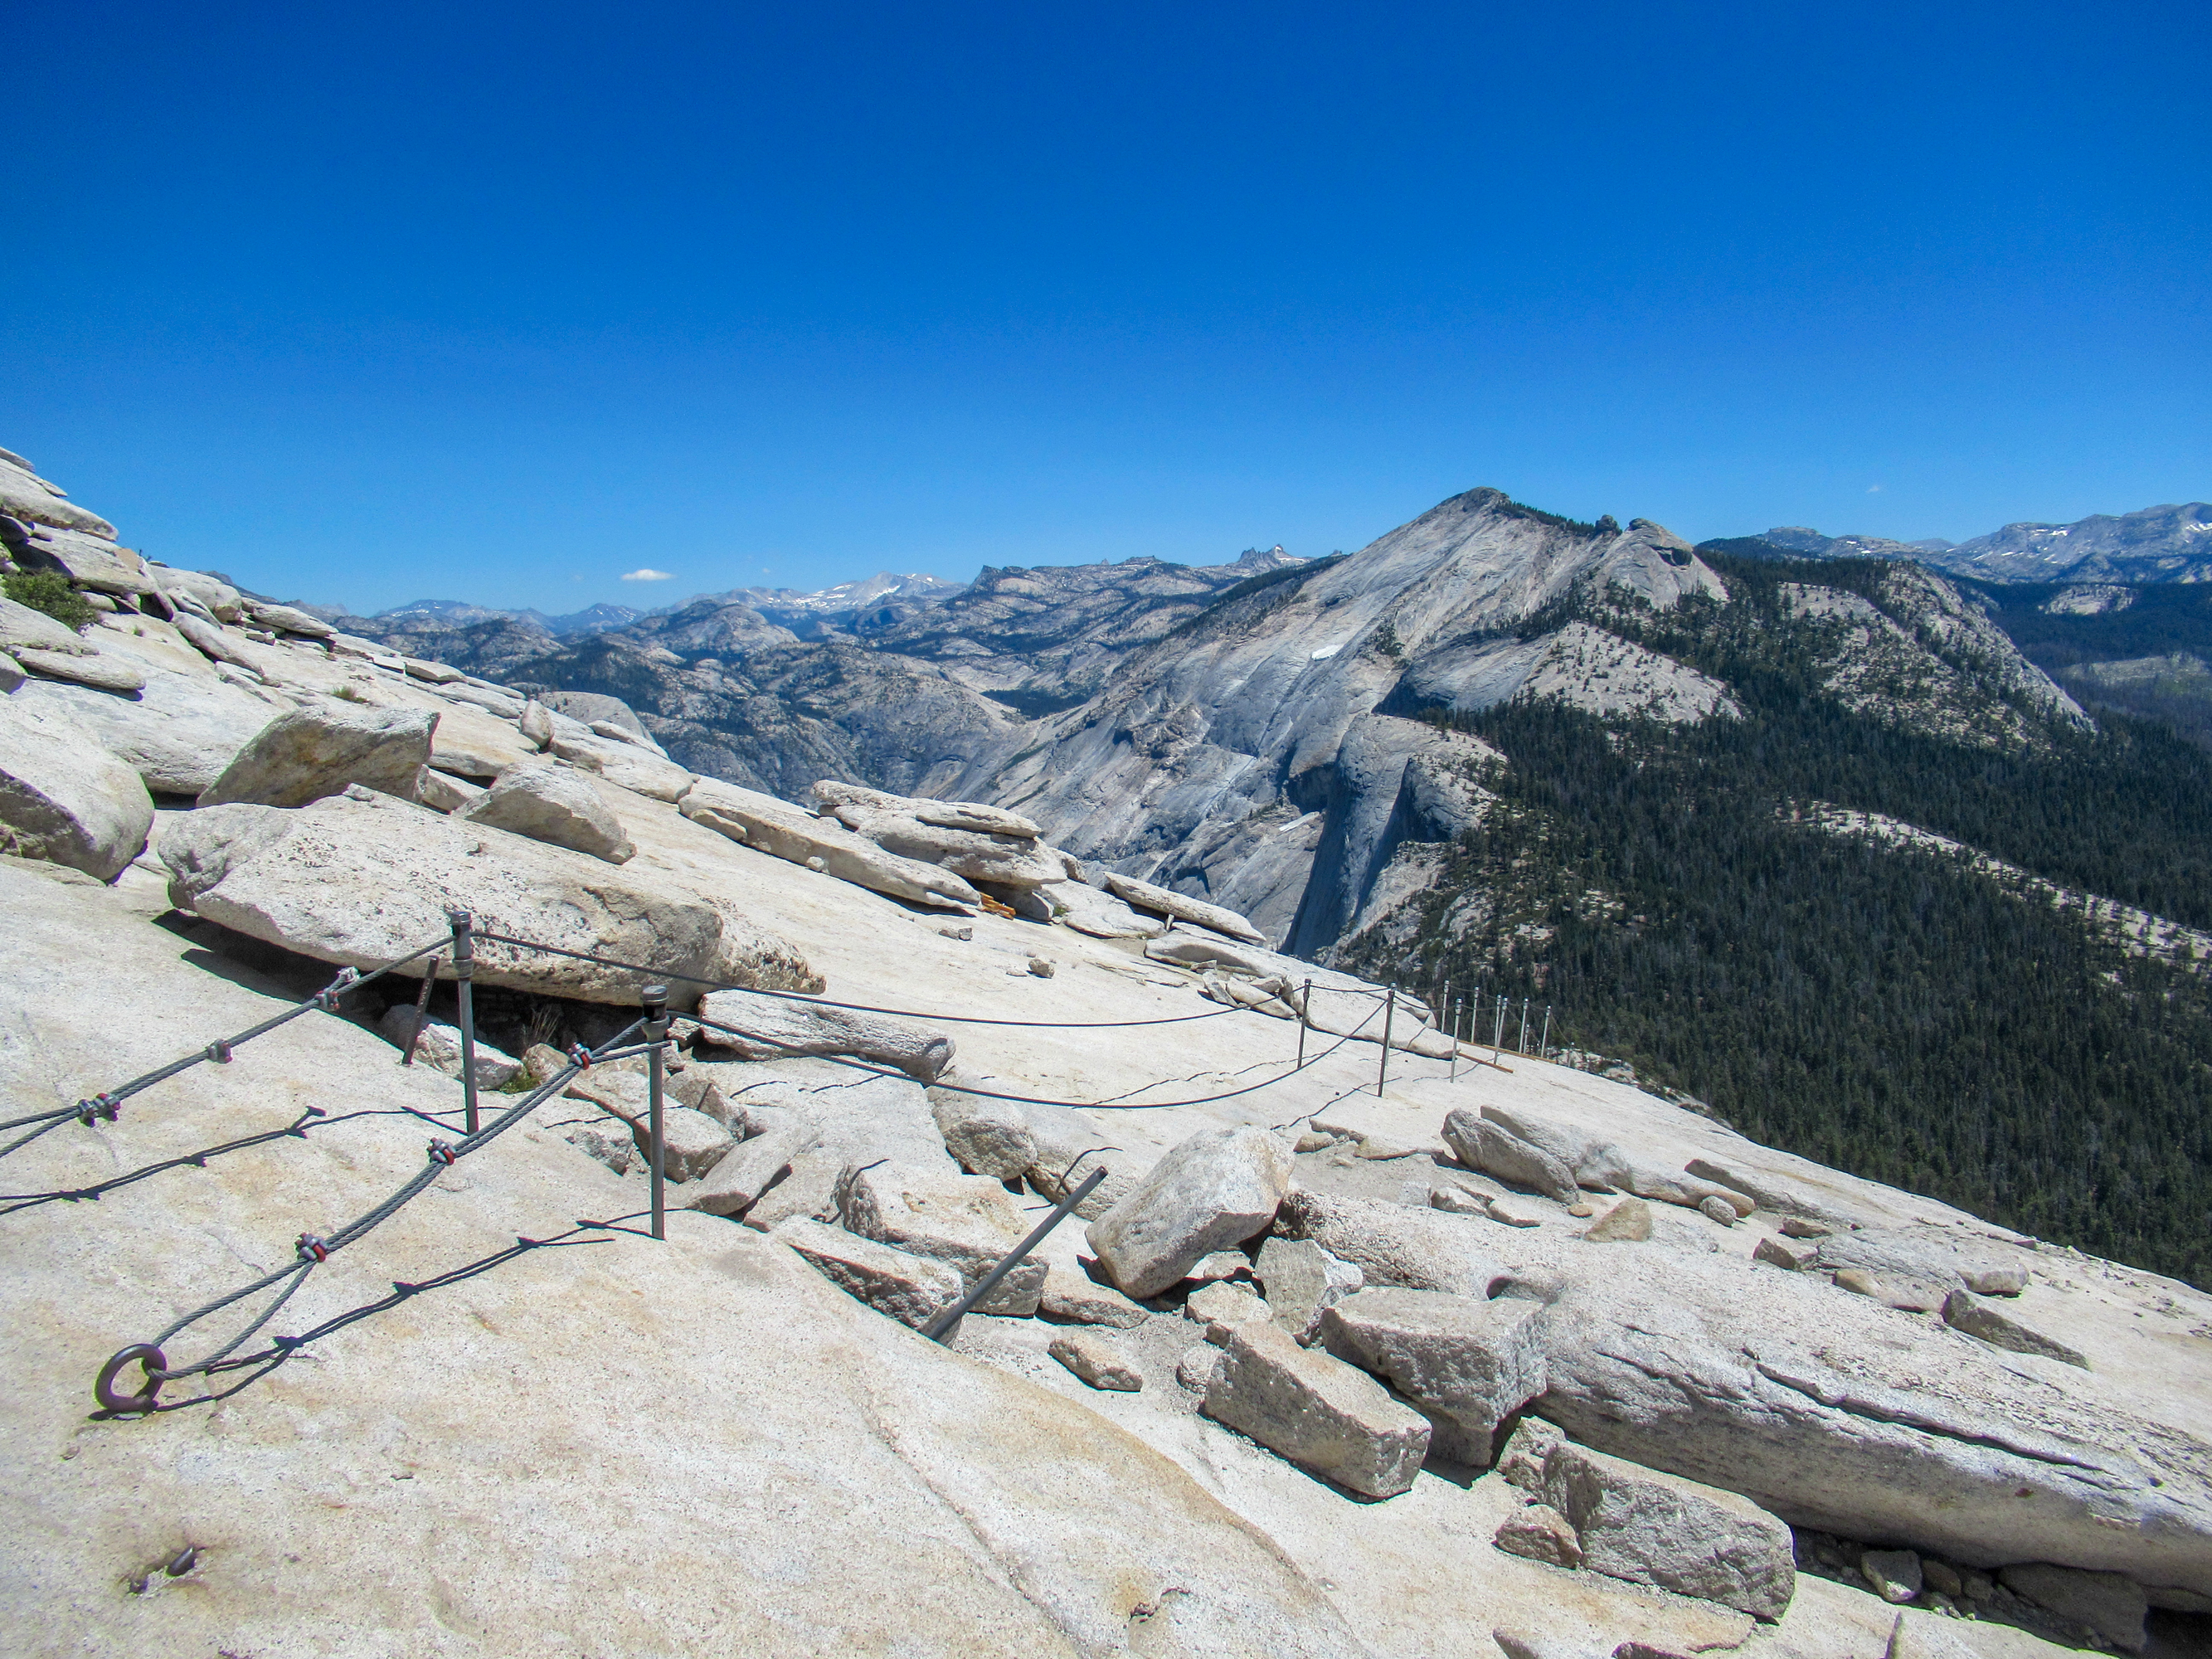 The infamous cables that allow access to the top of Half Dome.